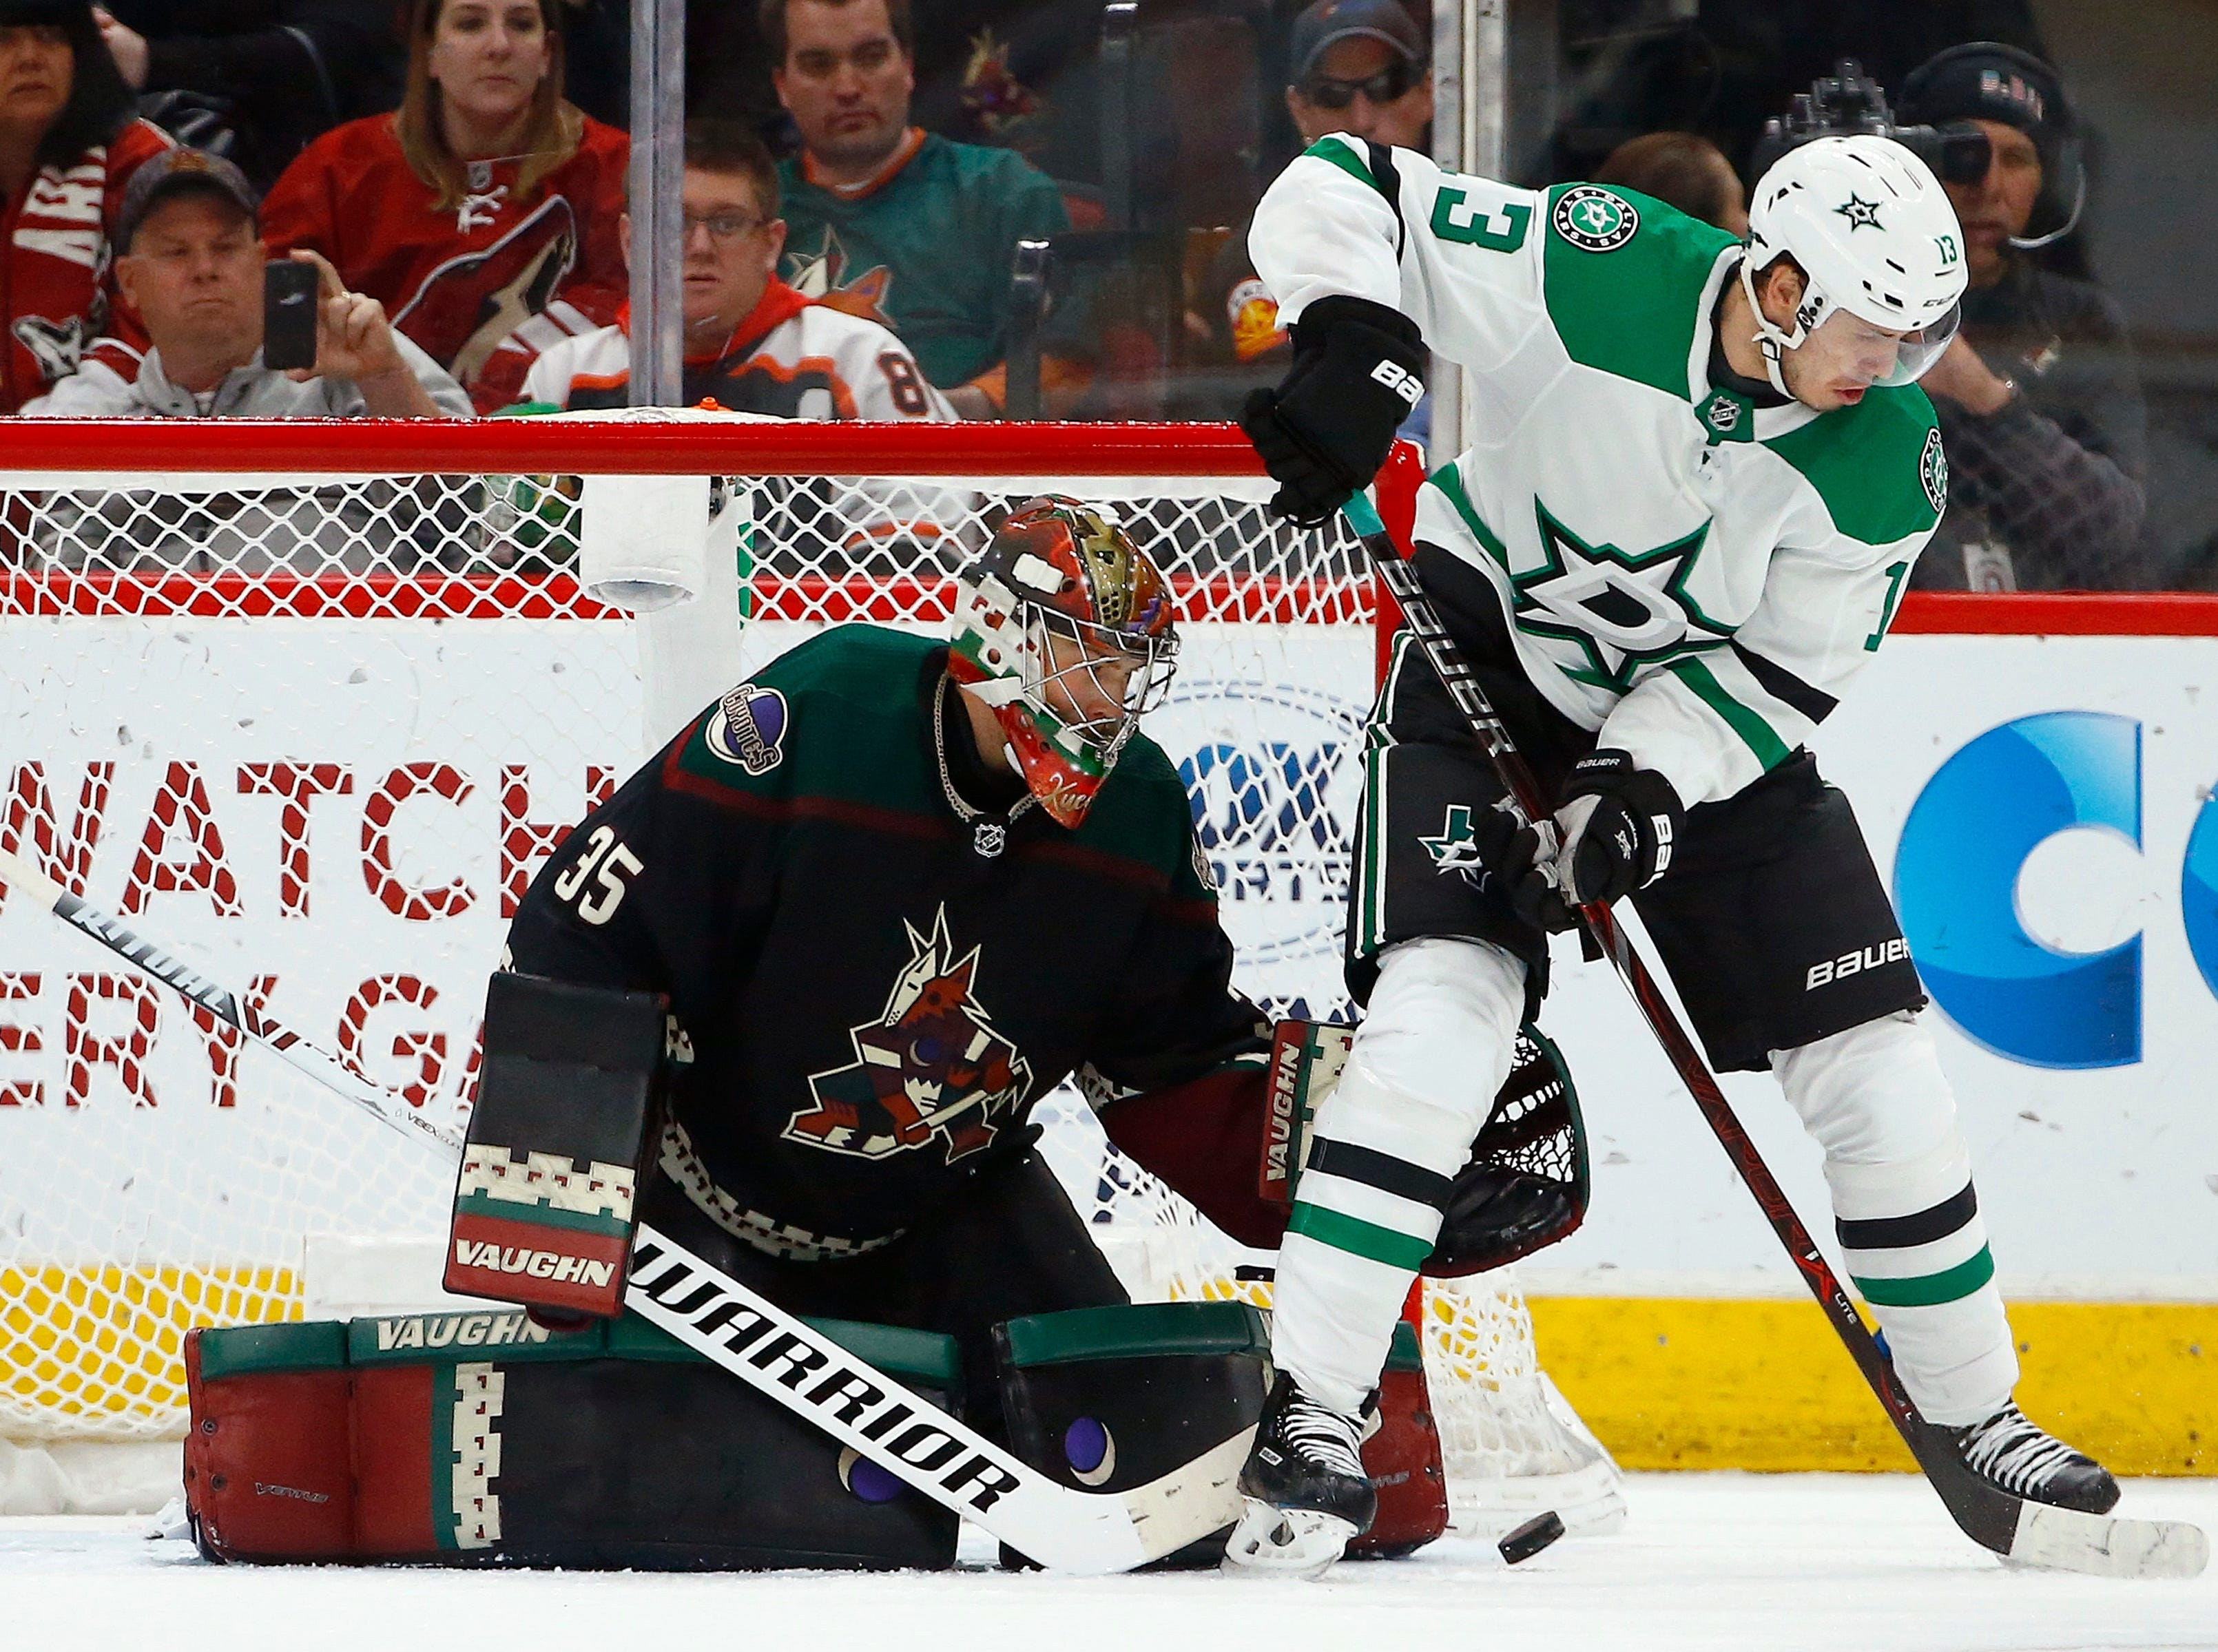 Arizona Coyotes goaltender Darcy Kuemper (35) slides over to make a save on a rebound shot by Dallas Stars center Mattias Janmark (13) during the second period of an NHL hockey game Saturday, Feb. 9, 2019, in Glendale, Ariz. (AP Photo/Ross D. Franklin)